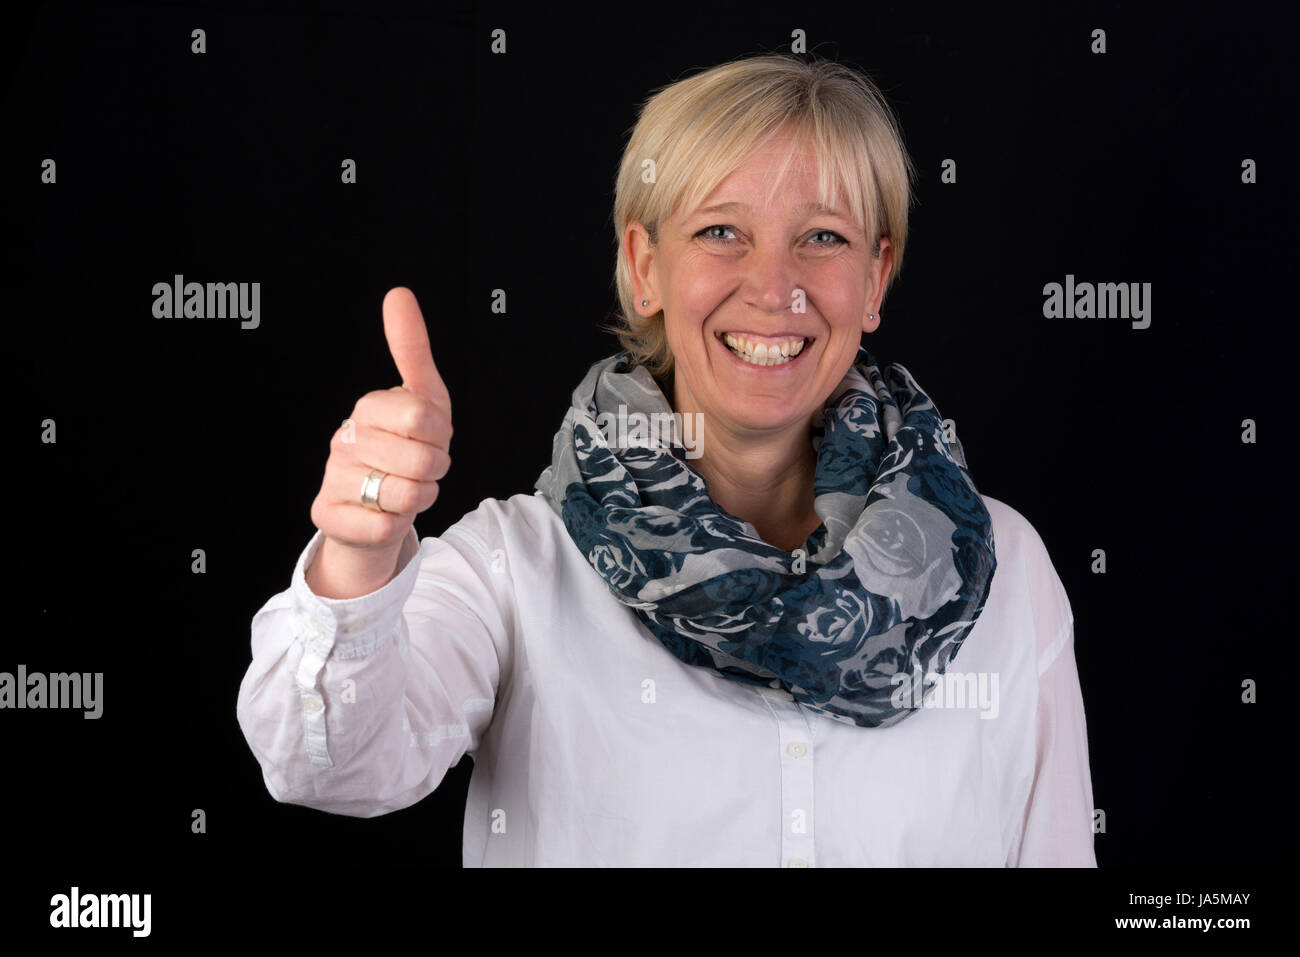 attractive blonde mature woman giving thumbs-up as positive sign